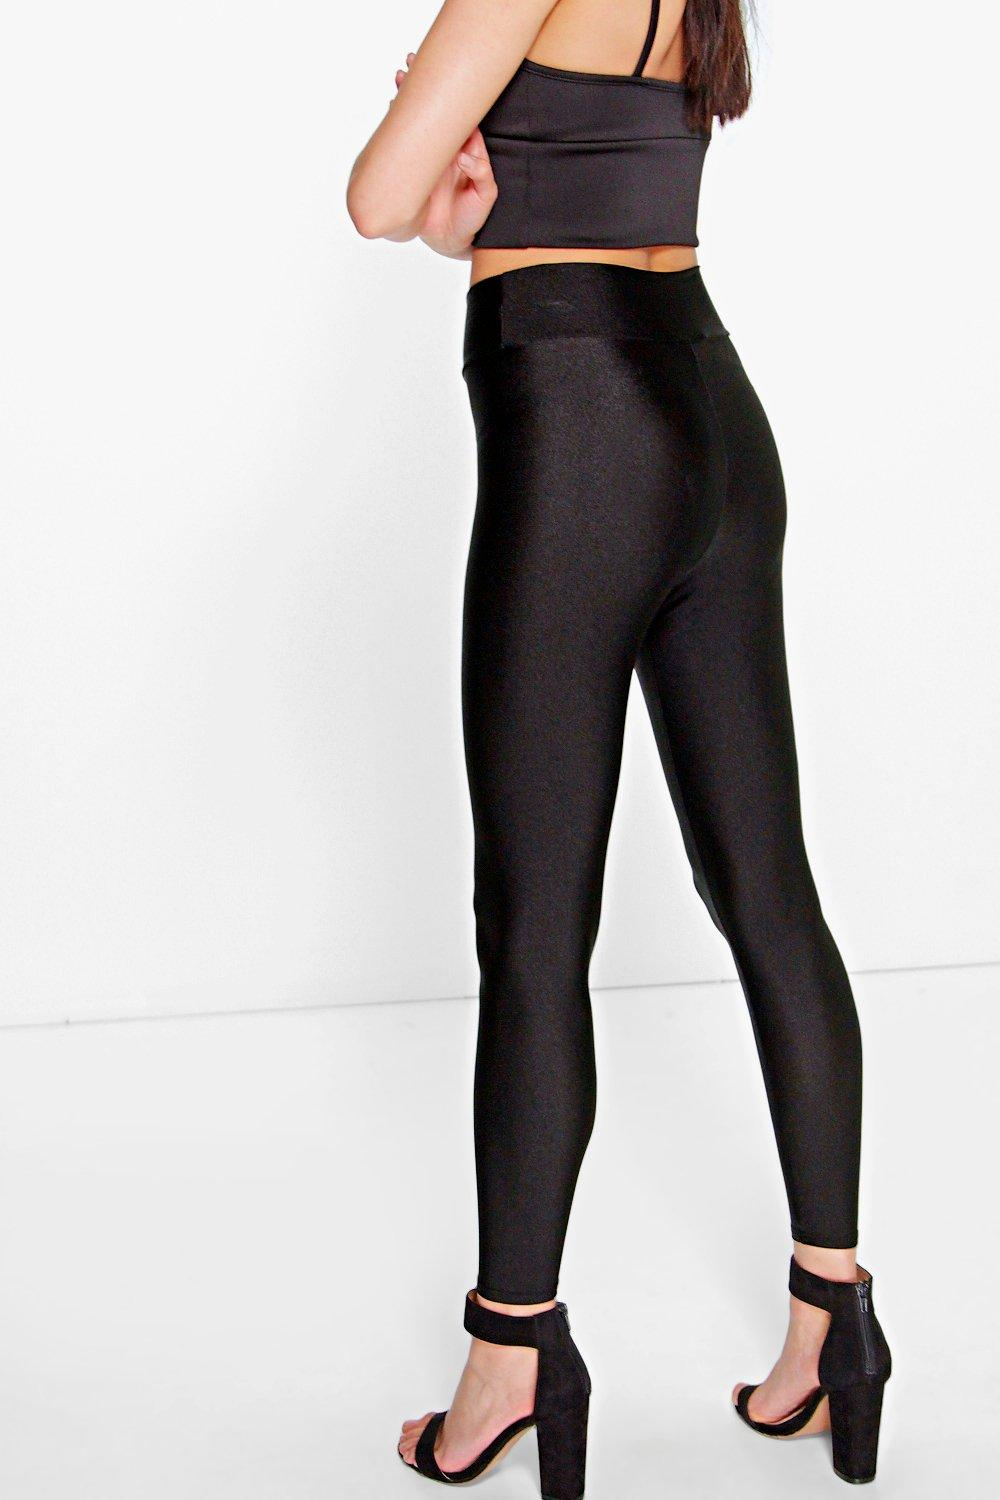 The Black Disco Pants For Adults will be the perfect addition to complete your Halloween costume! Accessories from Wholesale Halloween Costumes are top quality, so you will stand out from the rest!5/5(4).